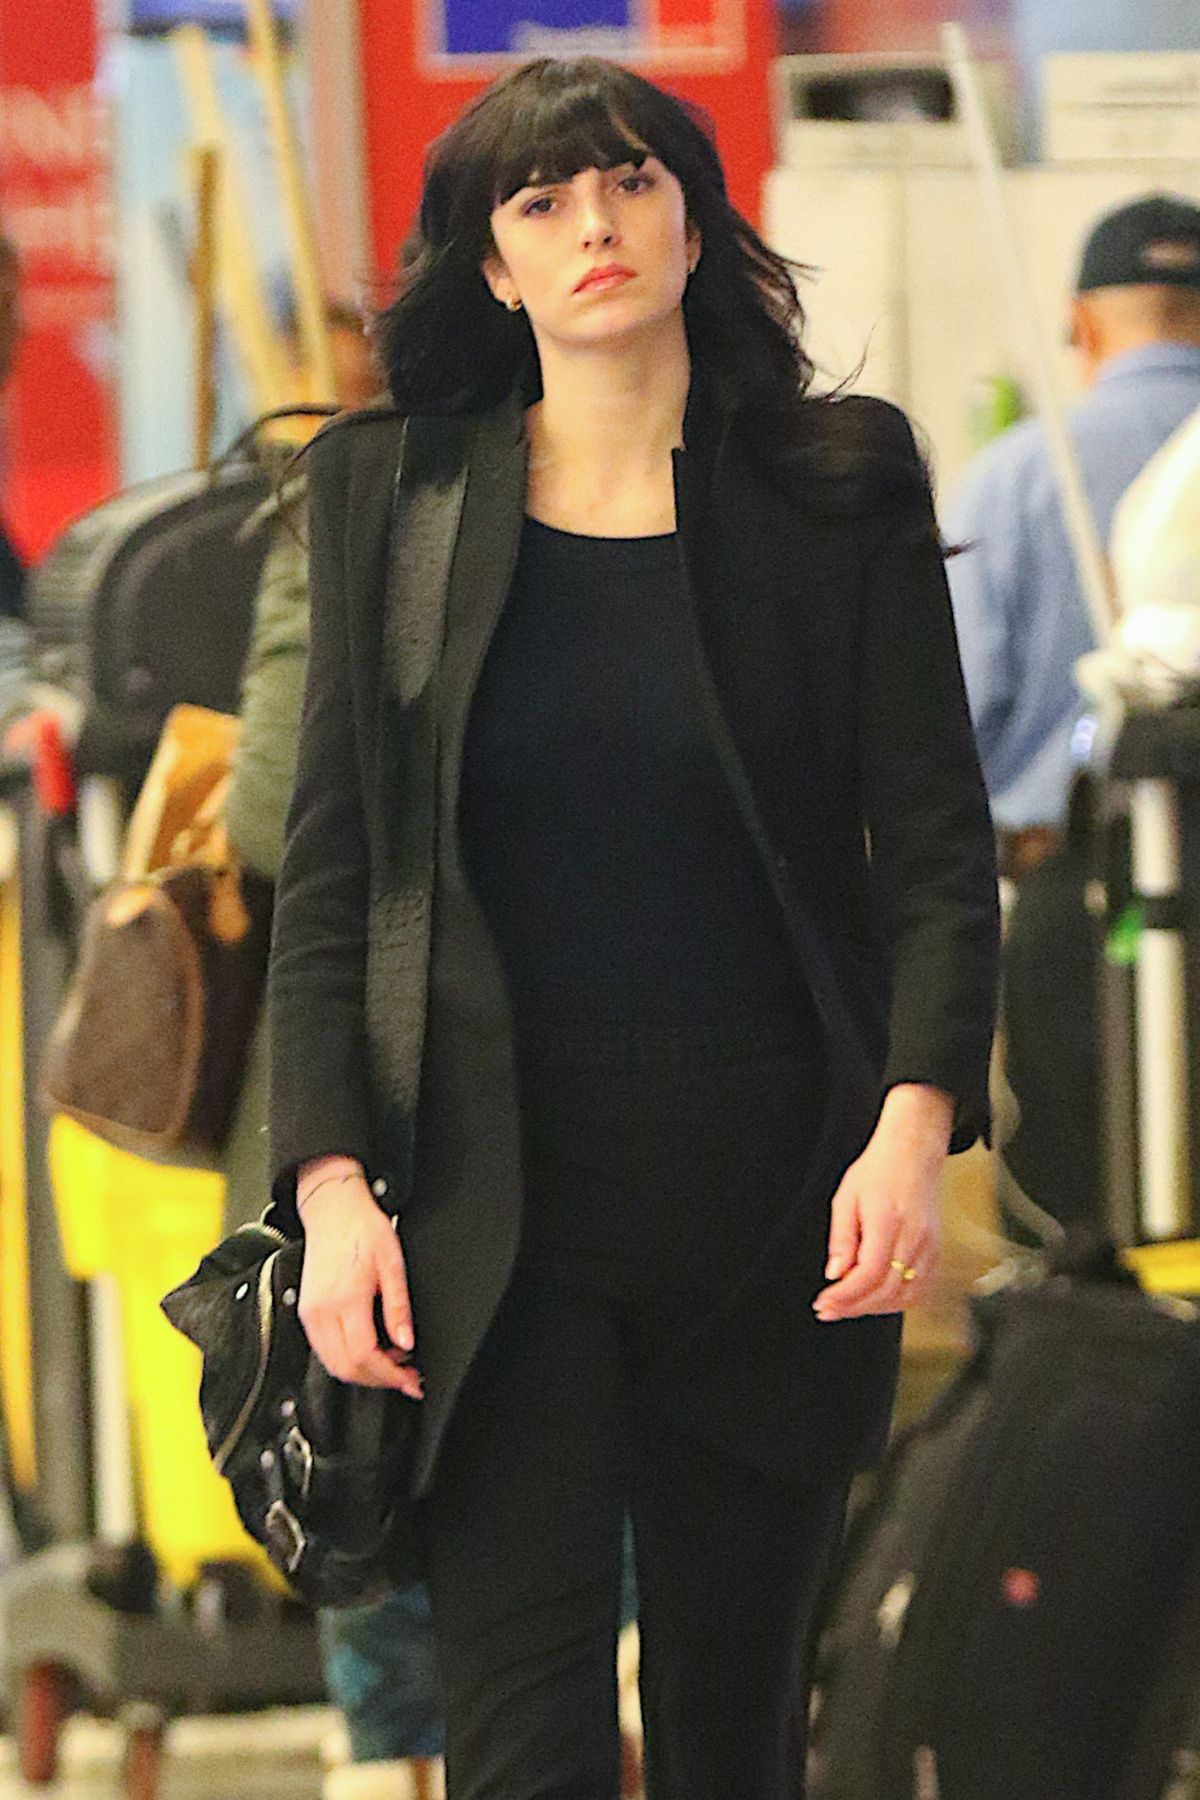 ALI LOHAN at JFK Airport in New York 02/09/2017